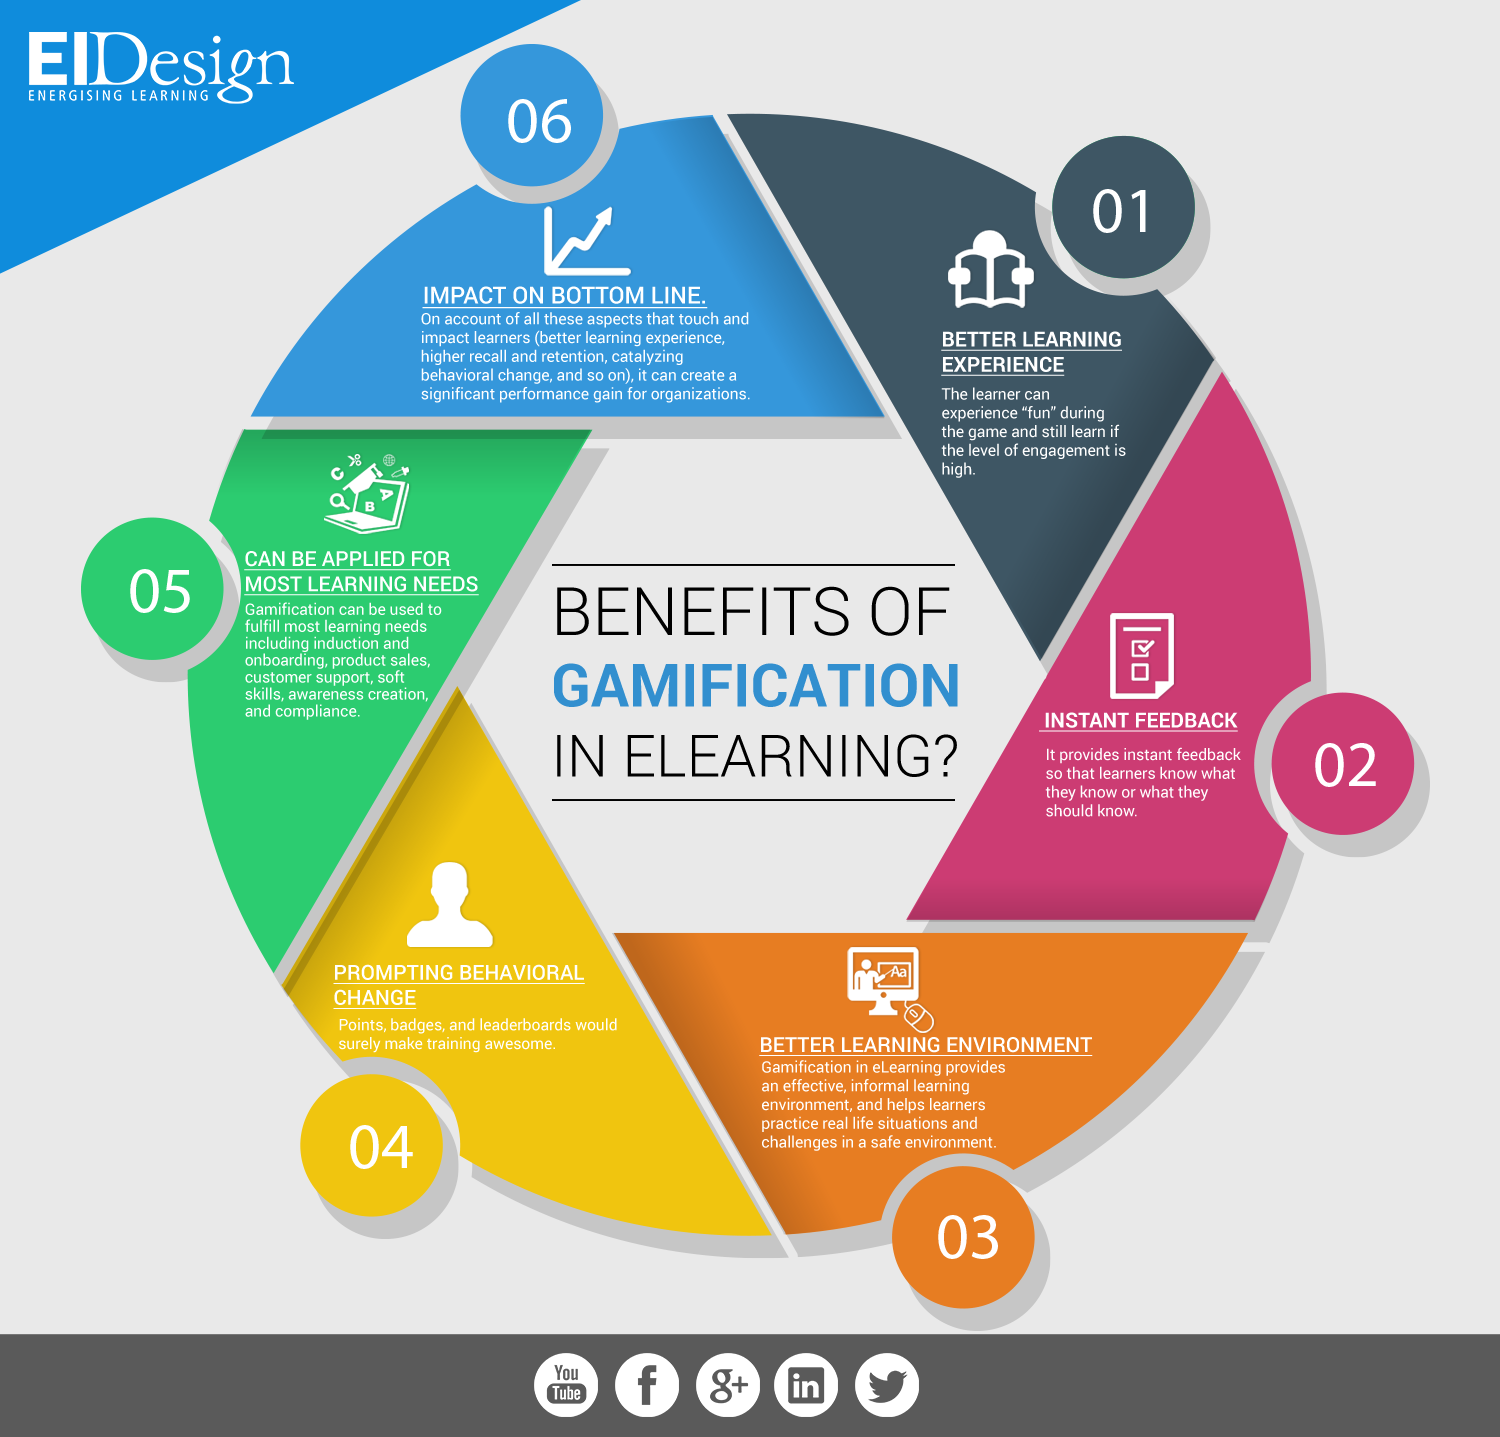 104 best ideas about Gamification on Pinterest | Marketing, Ebook ...